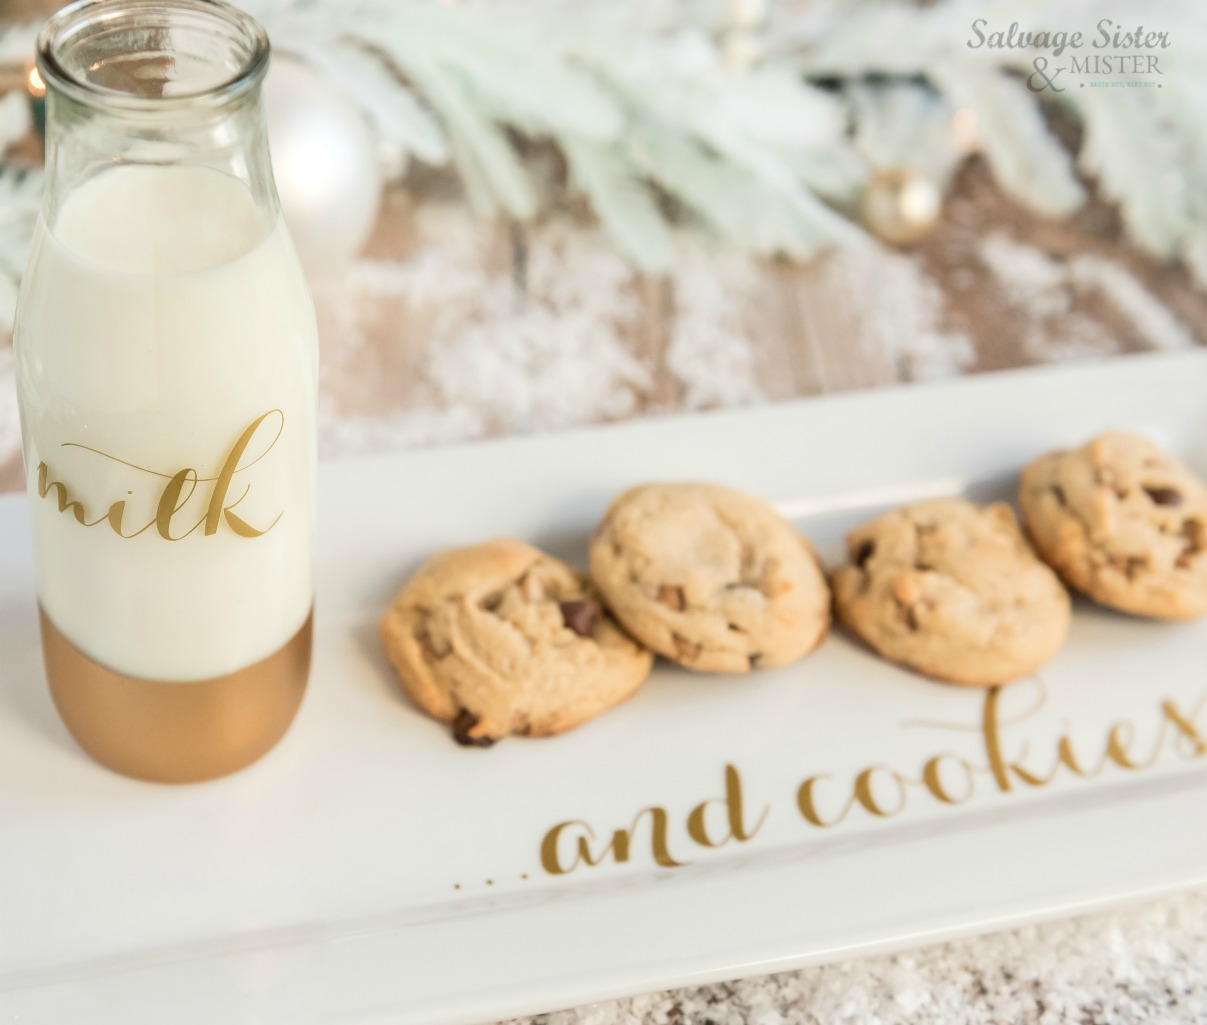 holiday cricut project - svg file - milk and cookies for santa on salvagesisterandmister.com